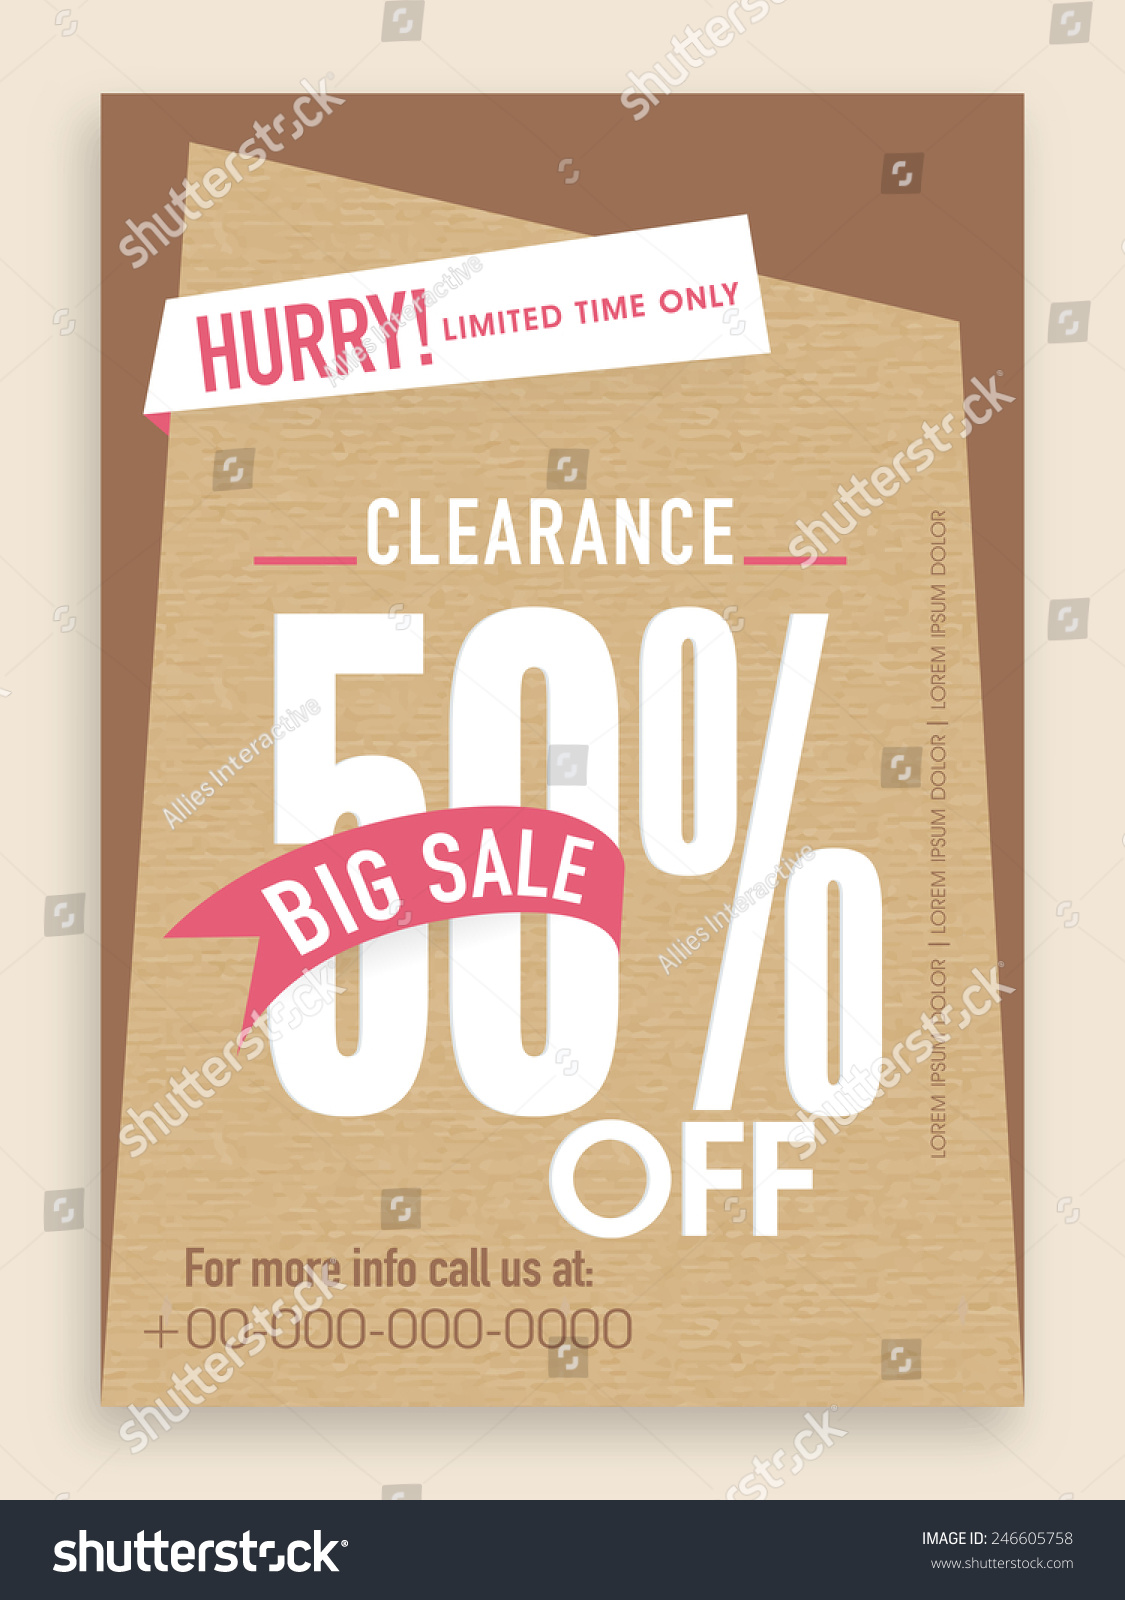 Clearance Sale Flyer Template Banner Design Stock Vector 246605758 ...